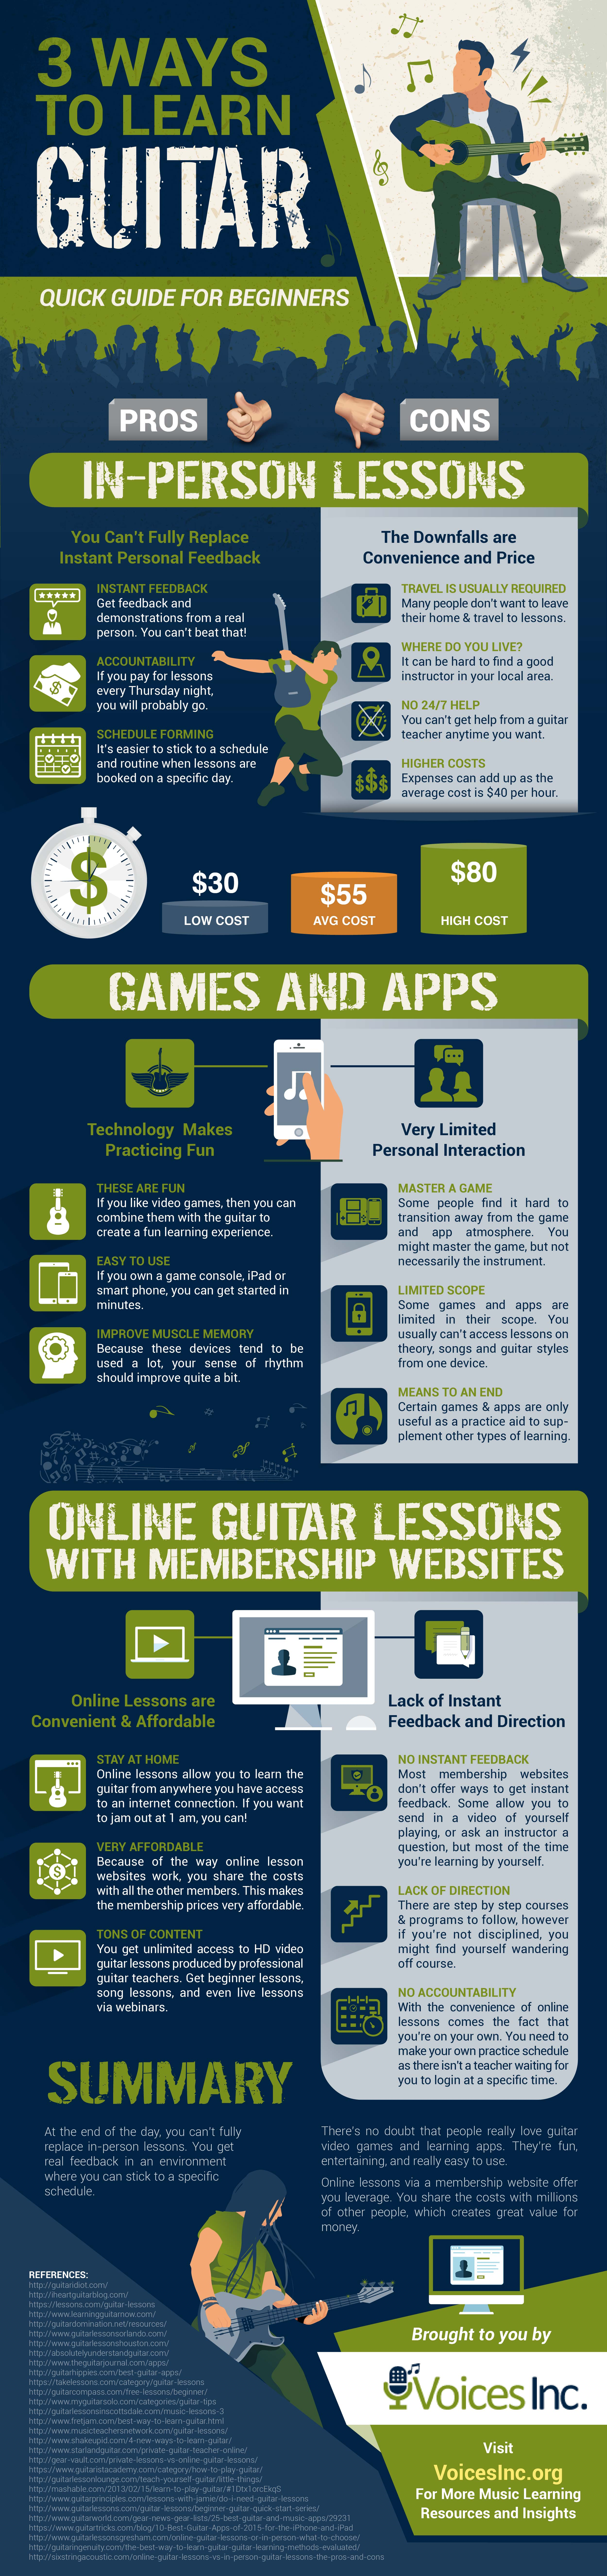 3 Ways to Learn Guitar Infographic